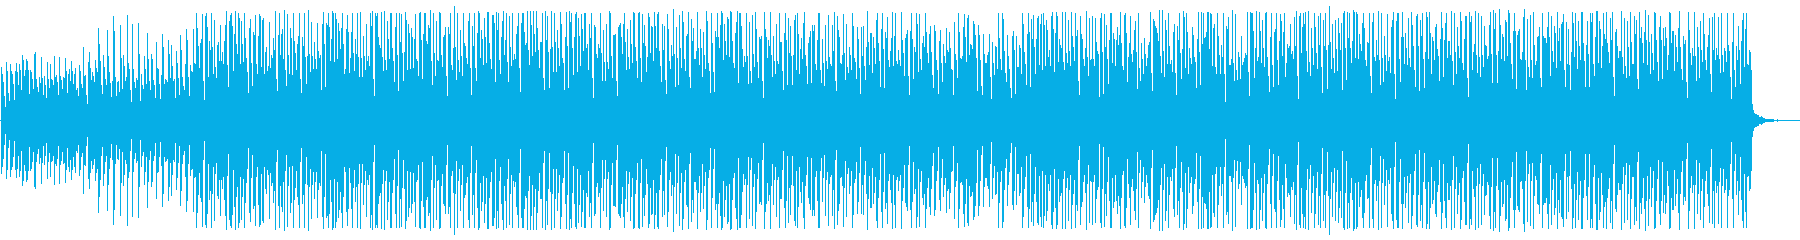 Refreshing songs for news and news programs's reproduced waveform